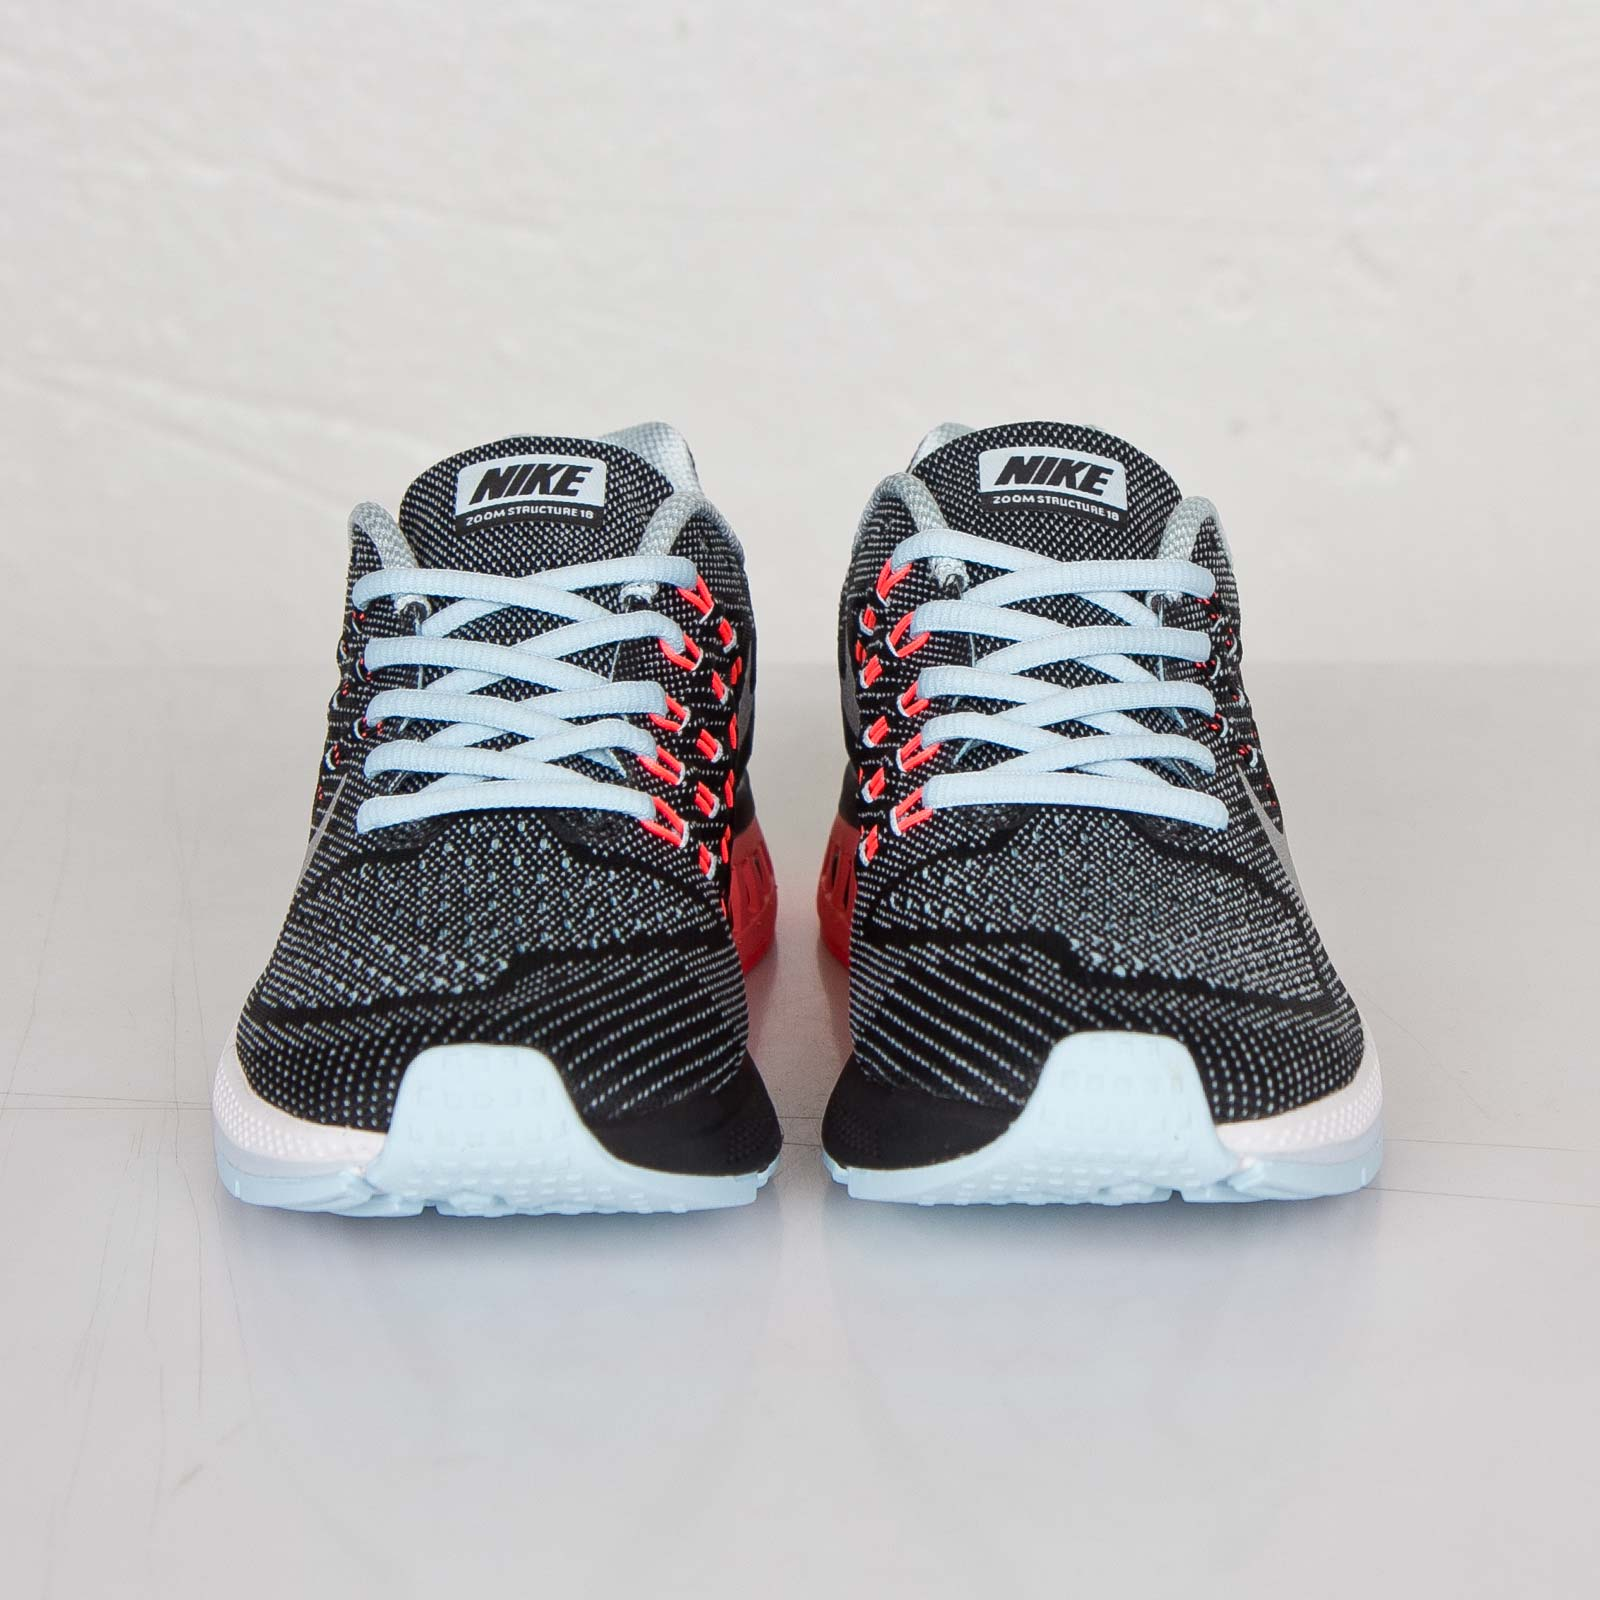 reputable site ba367 4175f ... Nike W Air Zoom Structure 18 ...